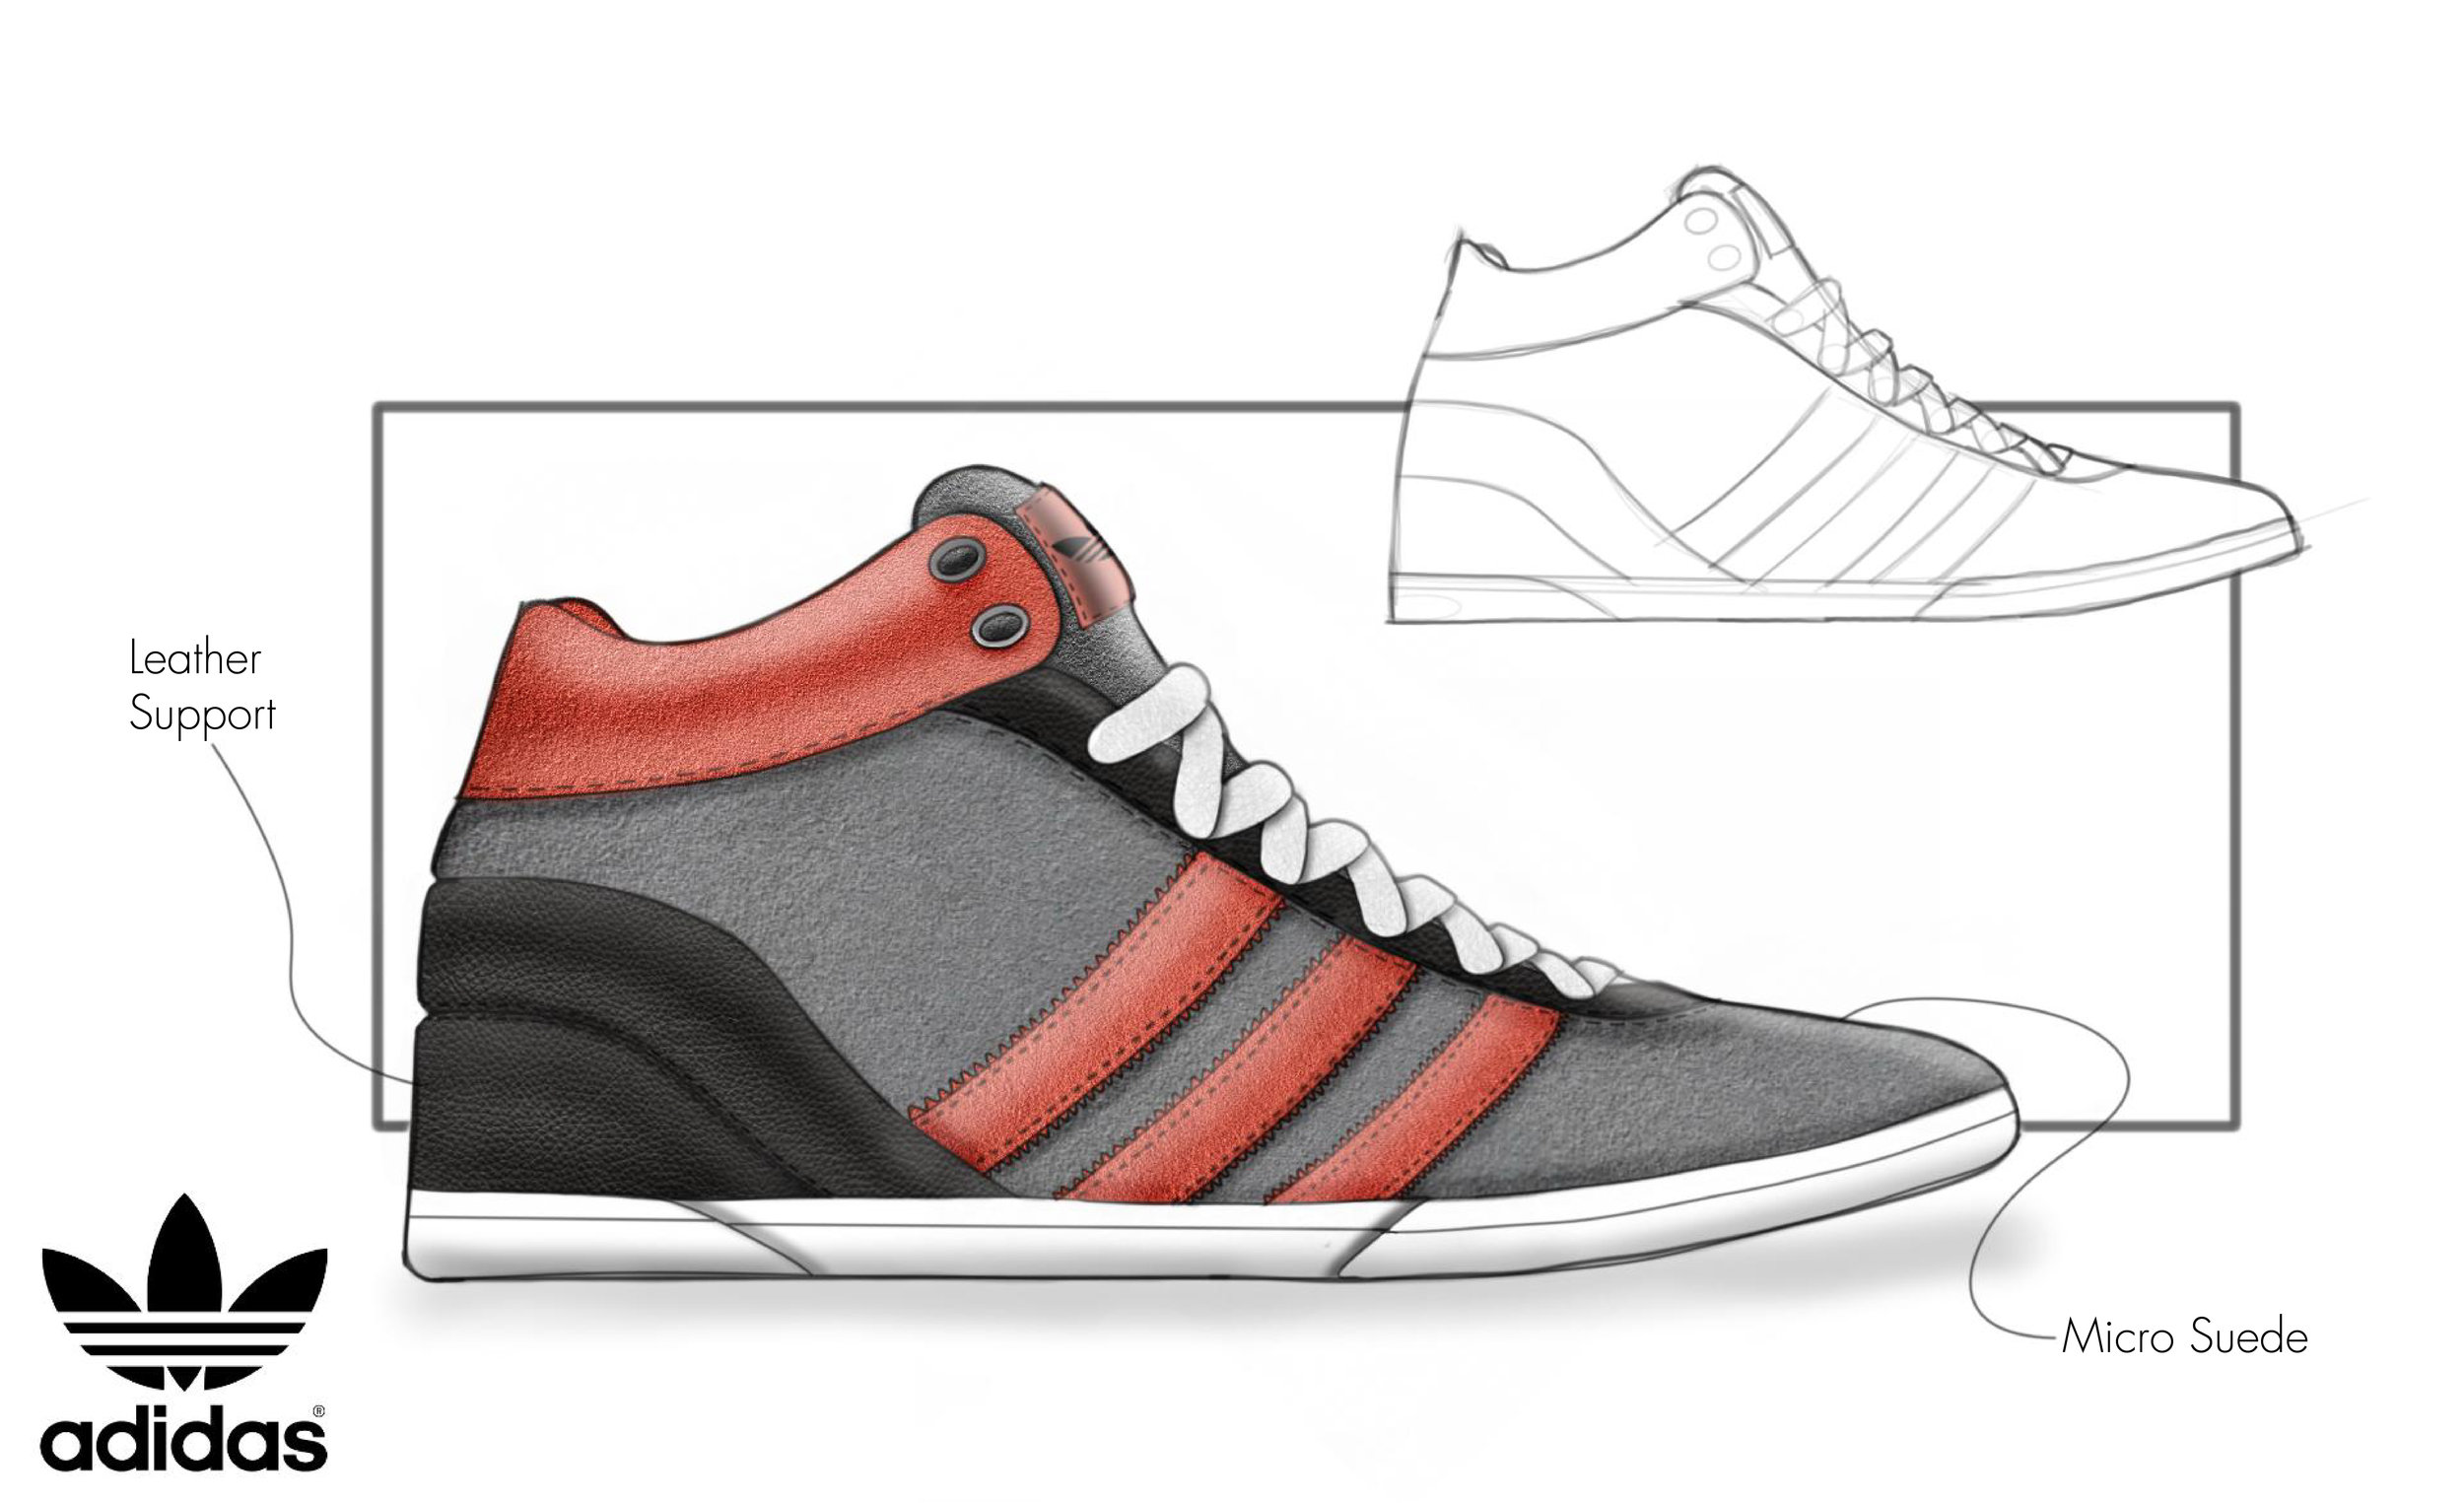 Adidas Mid-High Concept